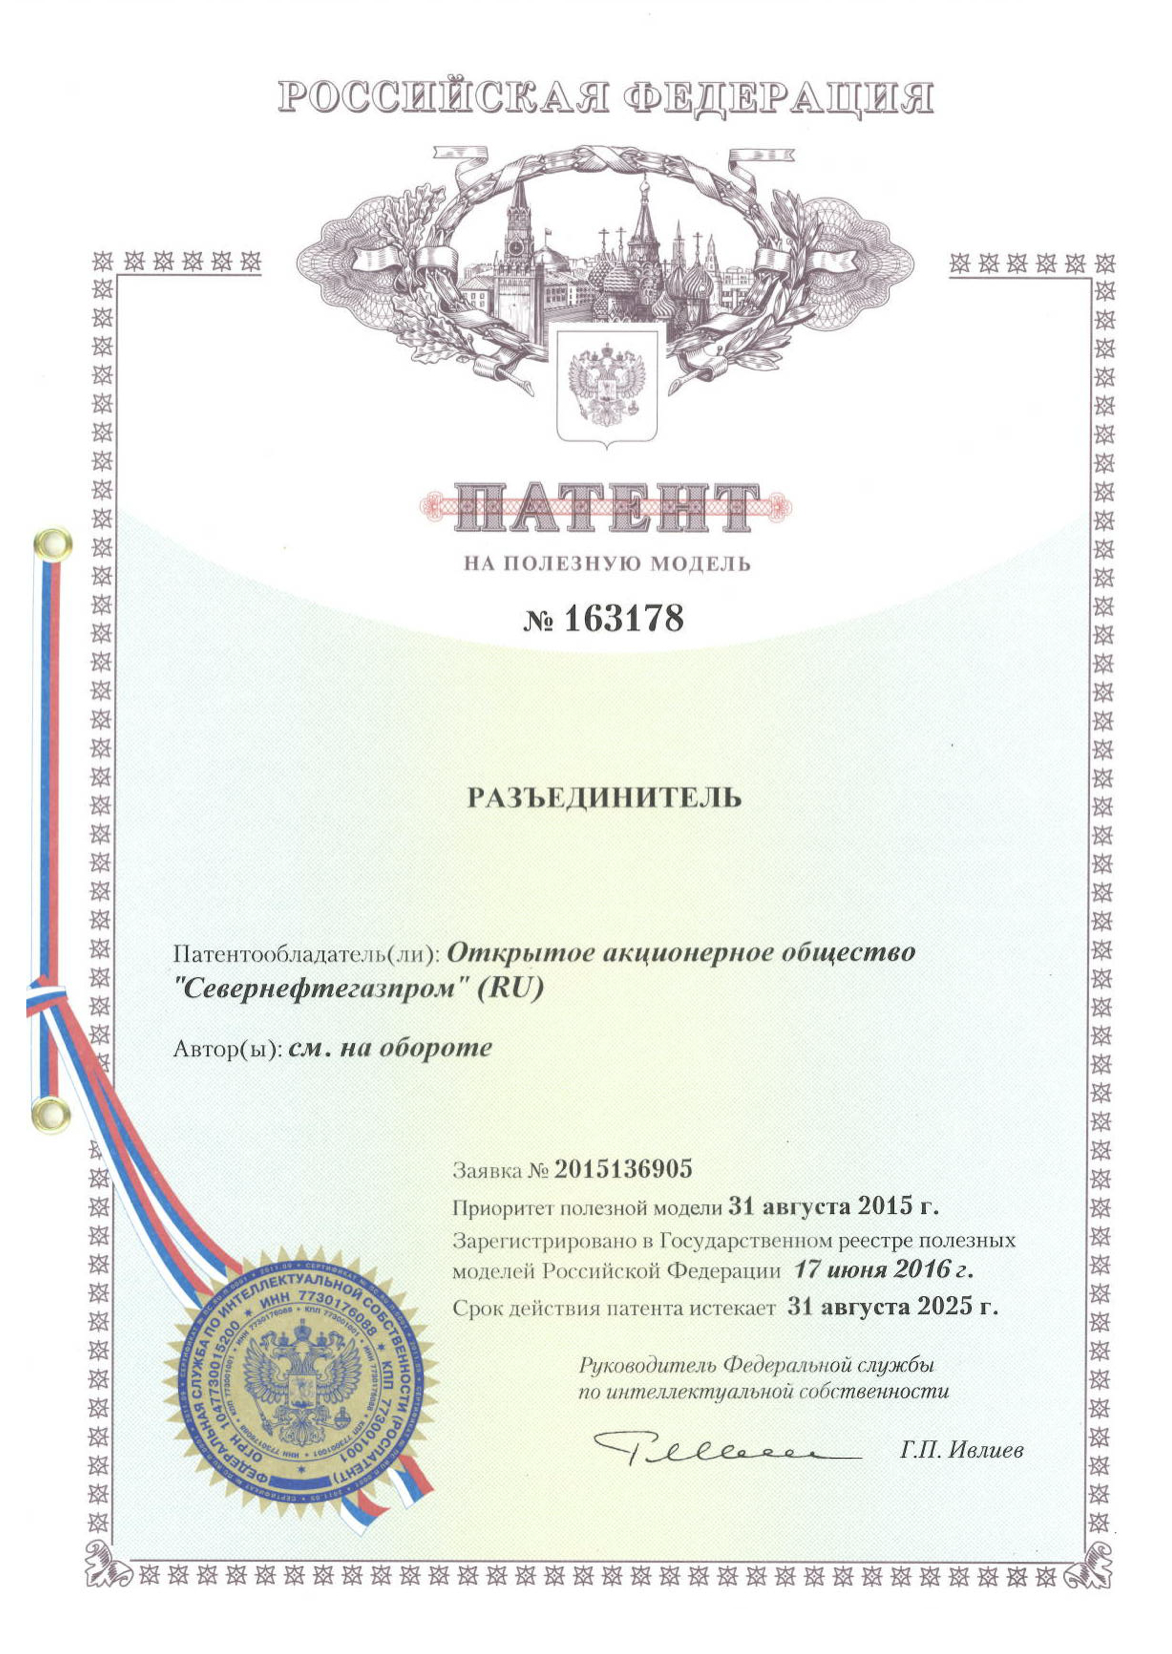 Patent for useful model №163178